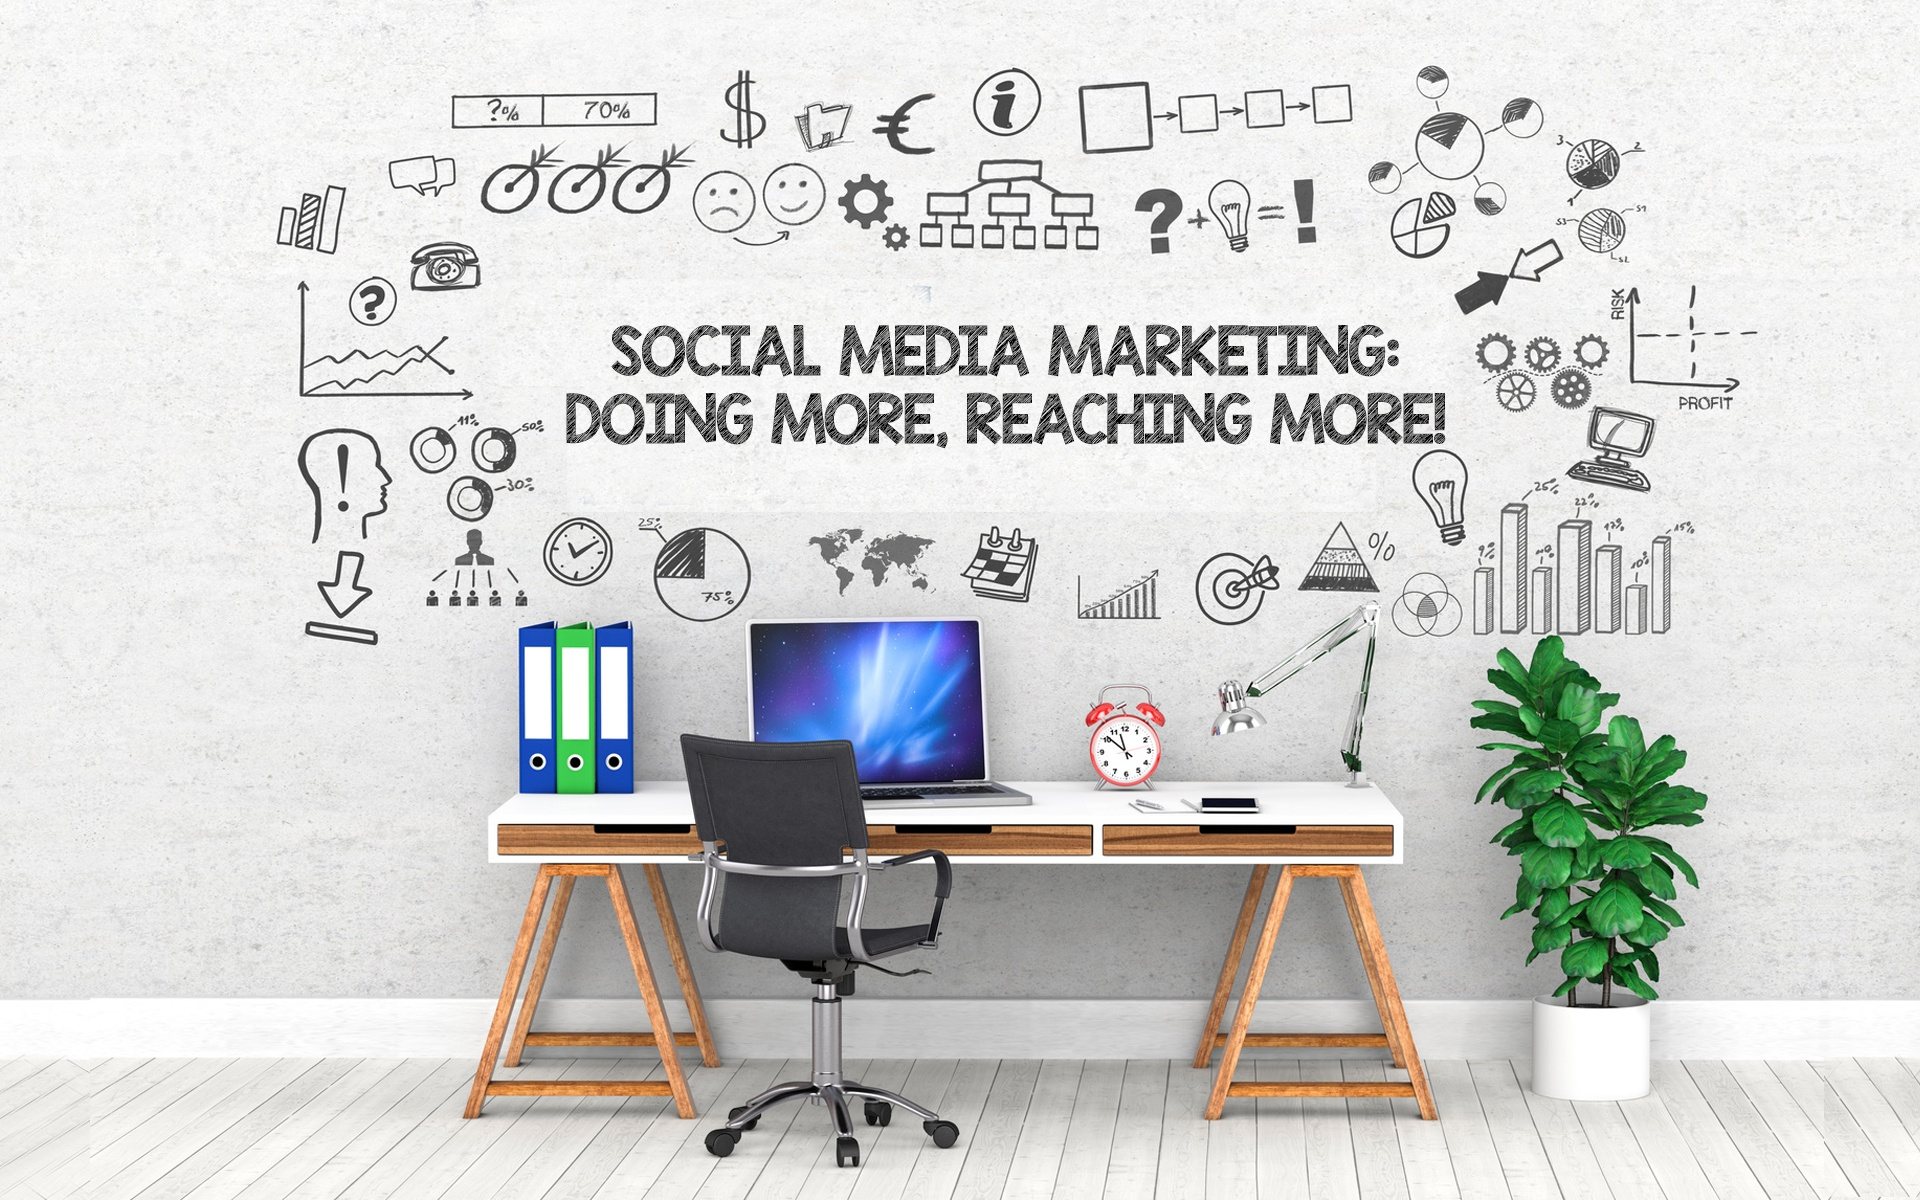 Social Media Marketing: Doing More, Reaching More!